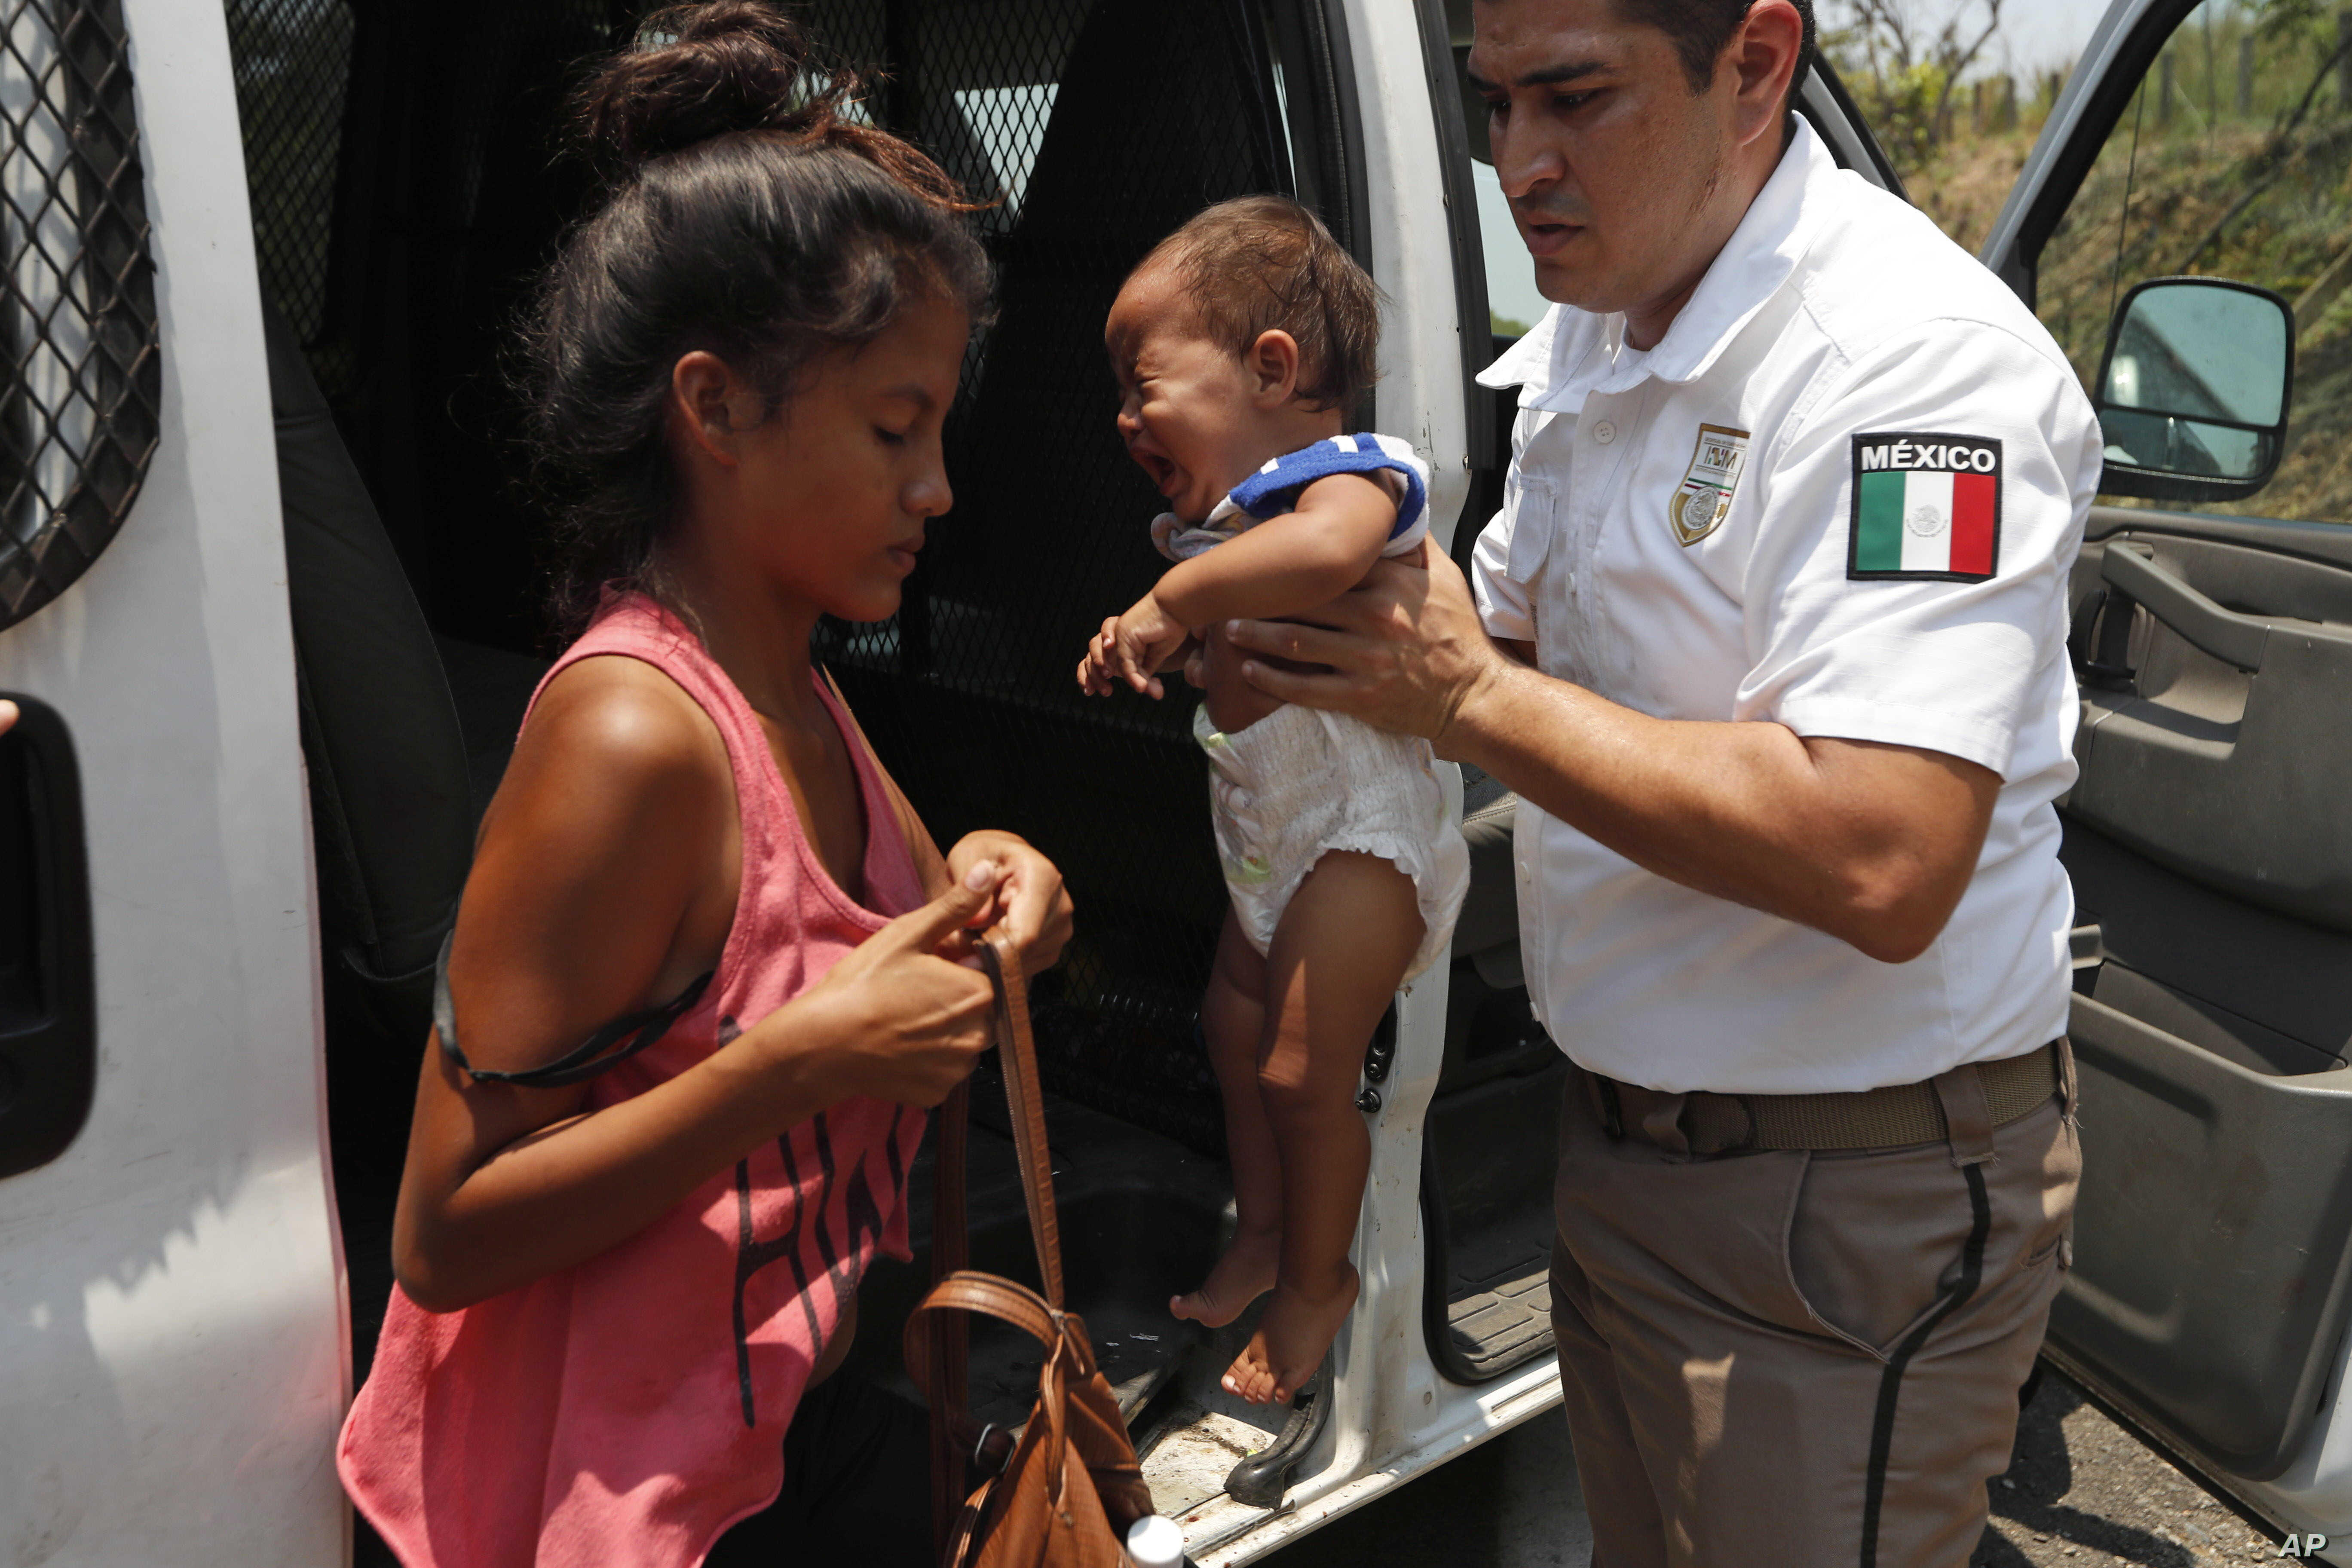 A Mexican immigration agent holds a woman's baby as she adjusts her bag so she can get into the agent's vehicle as he takes them and other Central American migrants into custody on the highway to Pijijiapan, Mexico, April 22, 2019.